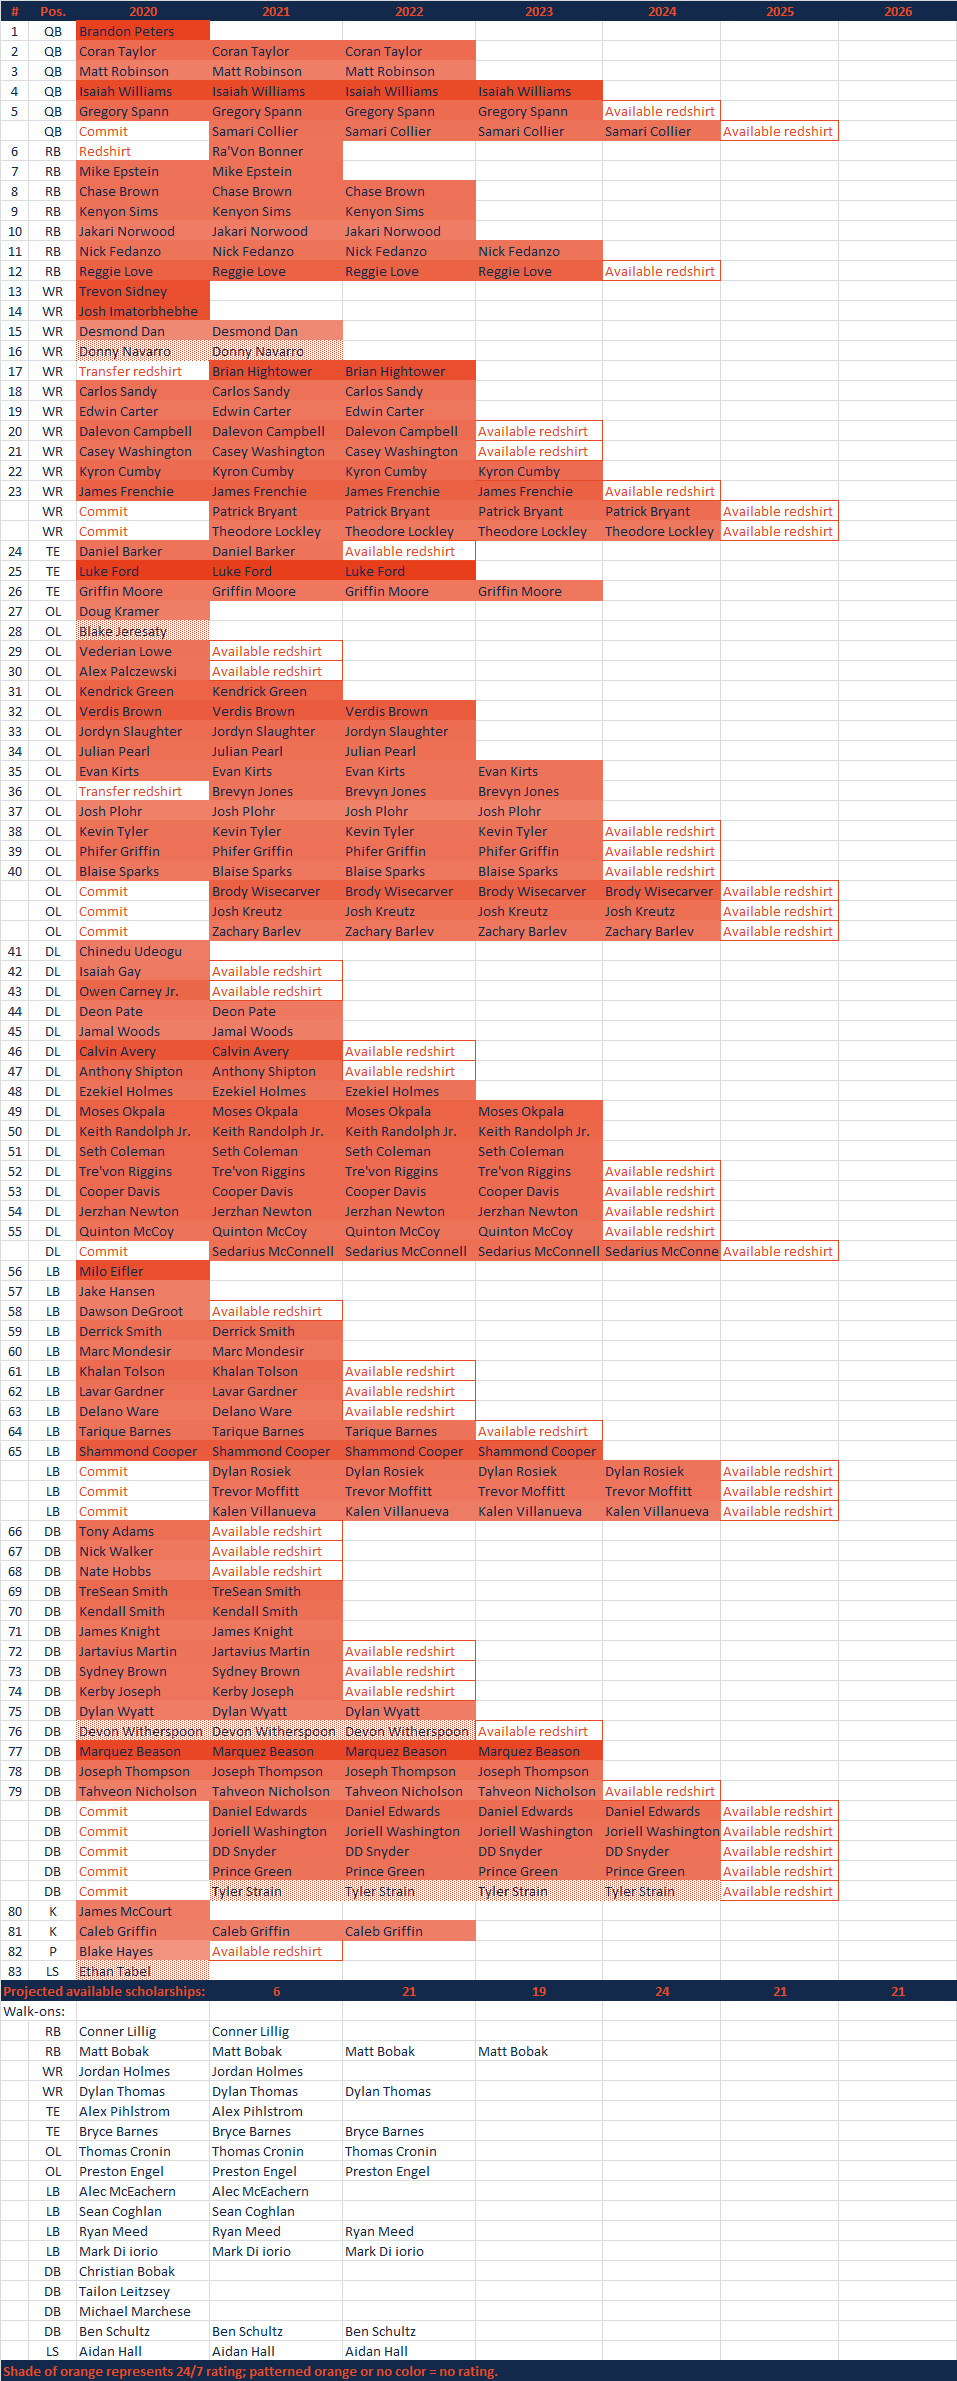 2020ScholarshipGrid0728.png